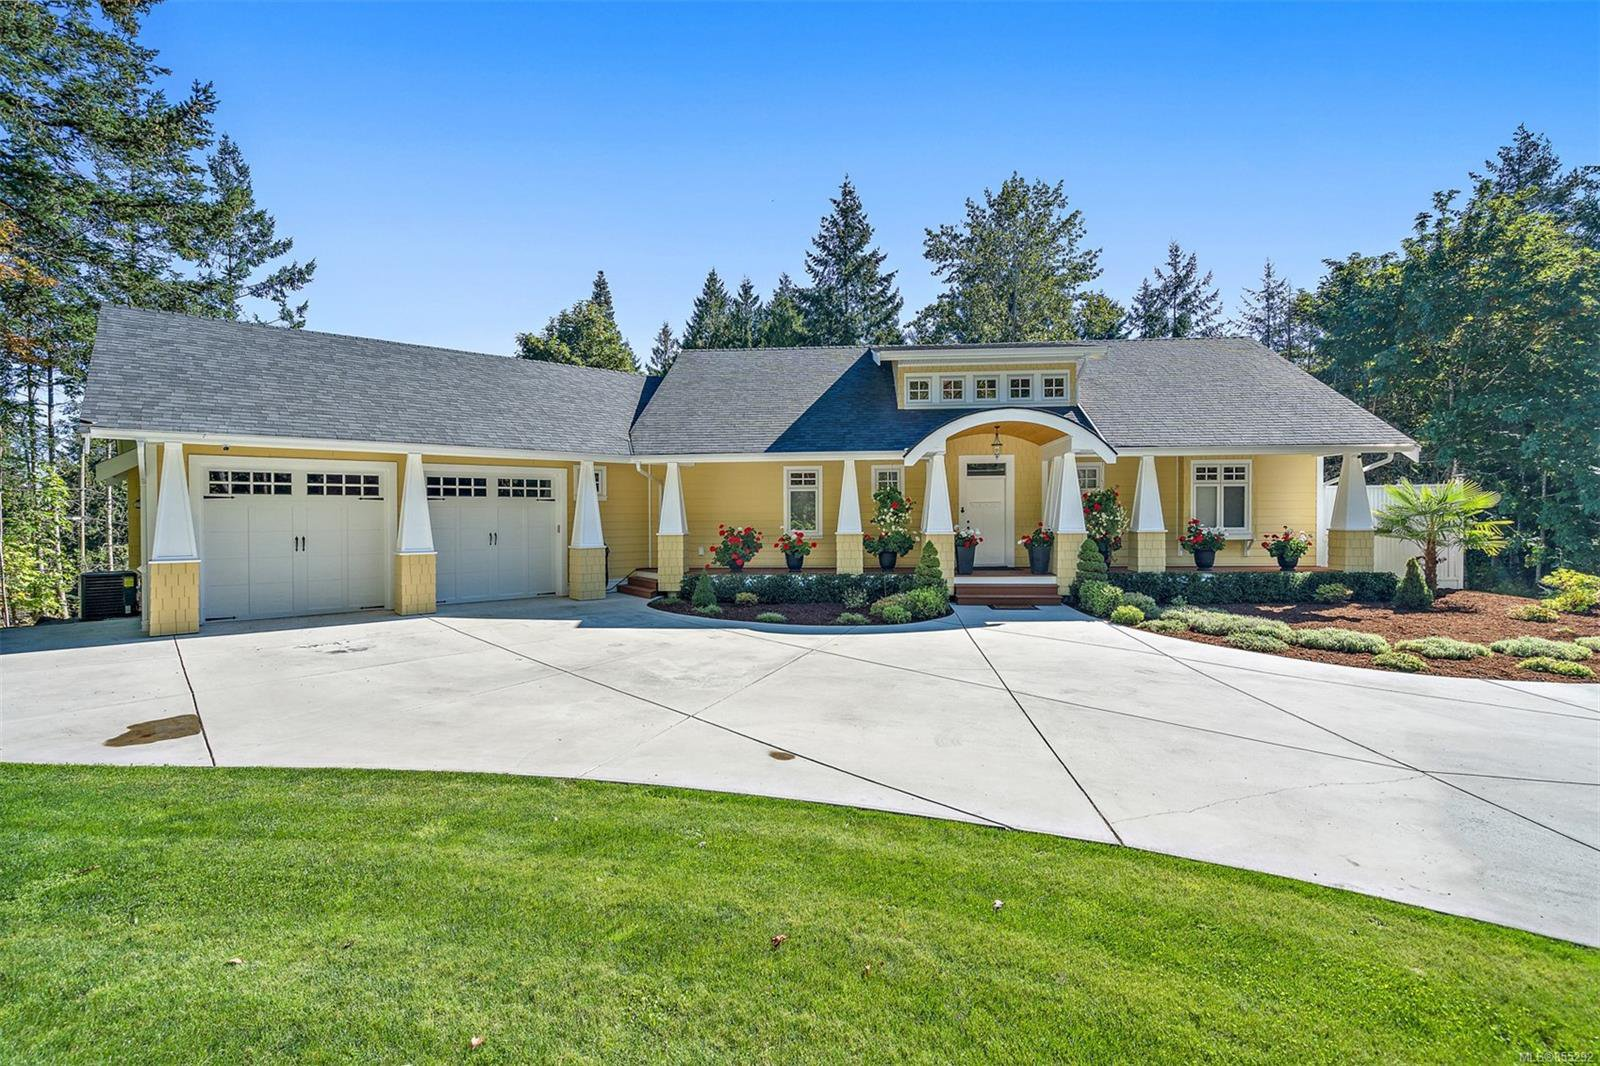 Main Photo: 1434 Honeysuckle Pl in : NS Lands End House for sale (North Saanich)  : MLS®# 855292